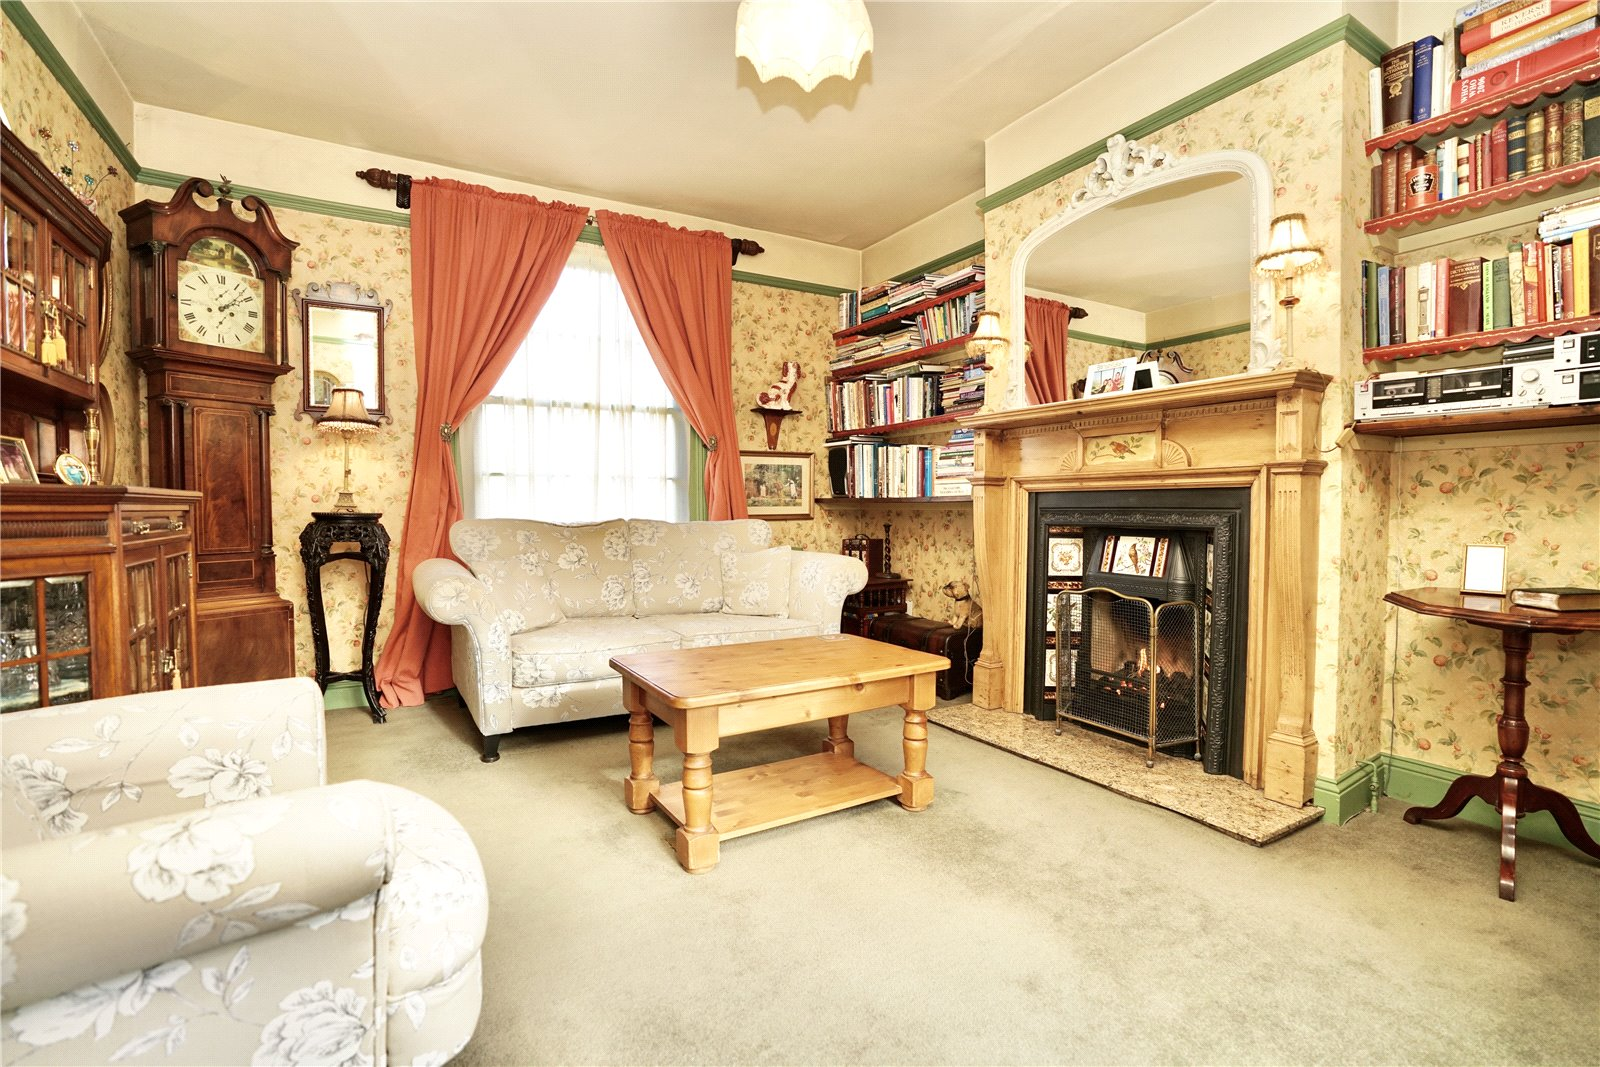 4 bed house for sale in Great Staughton  - Property Image 9